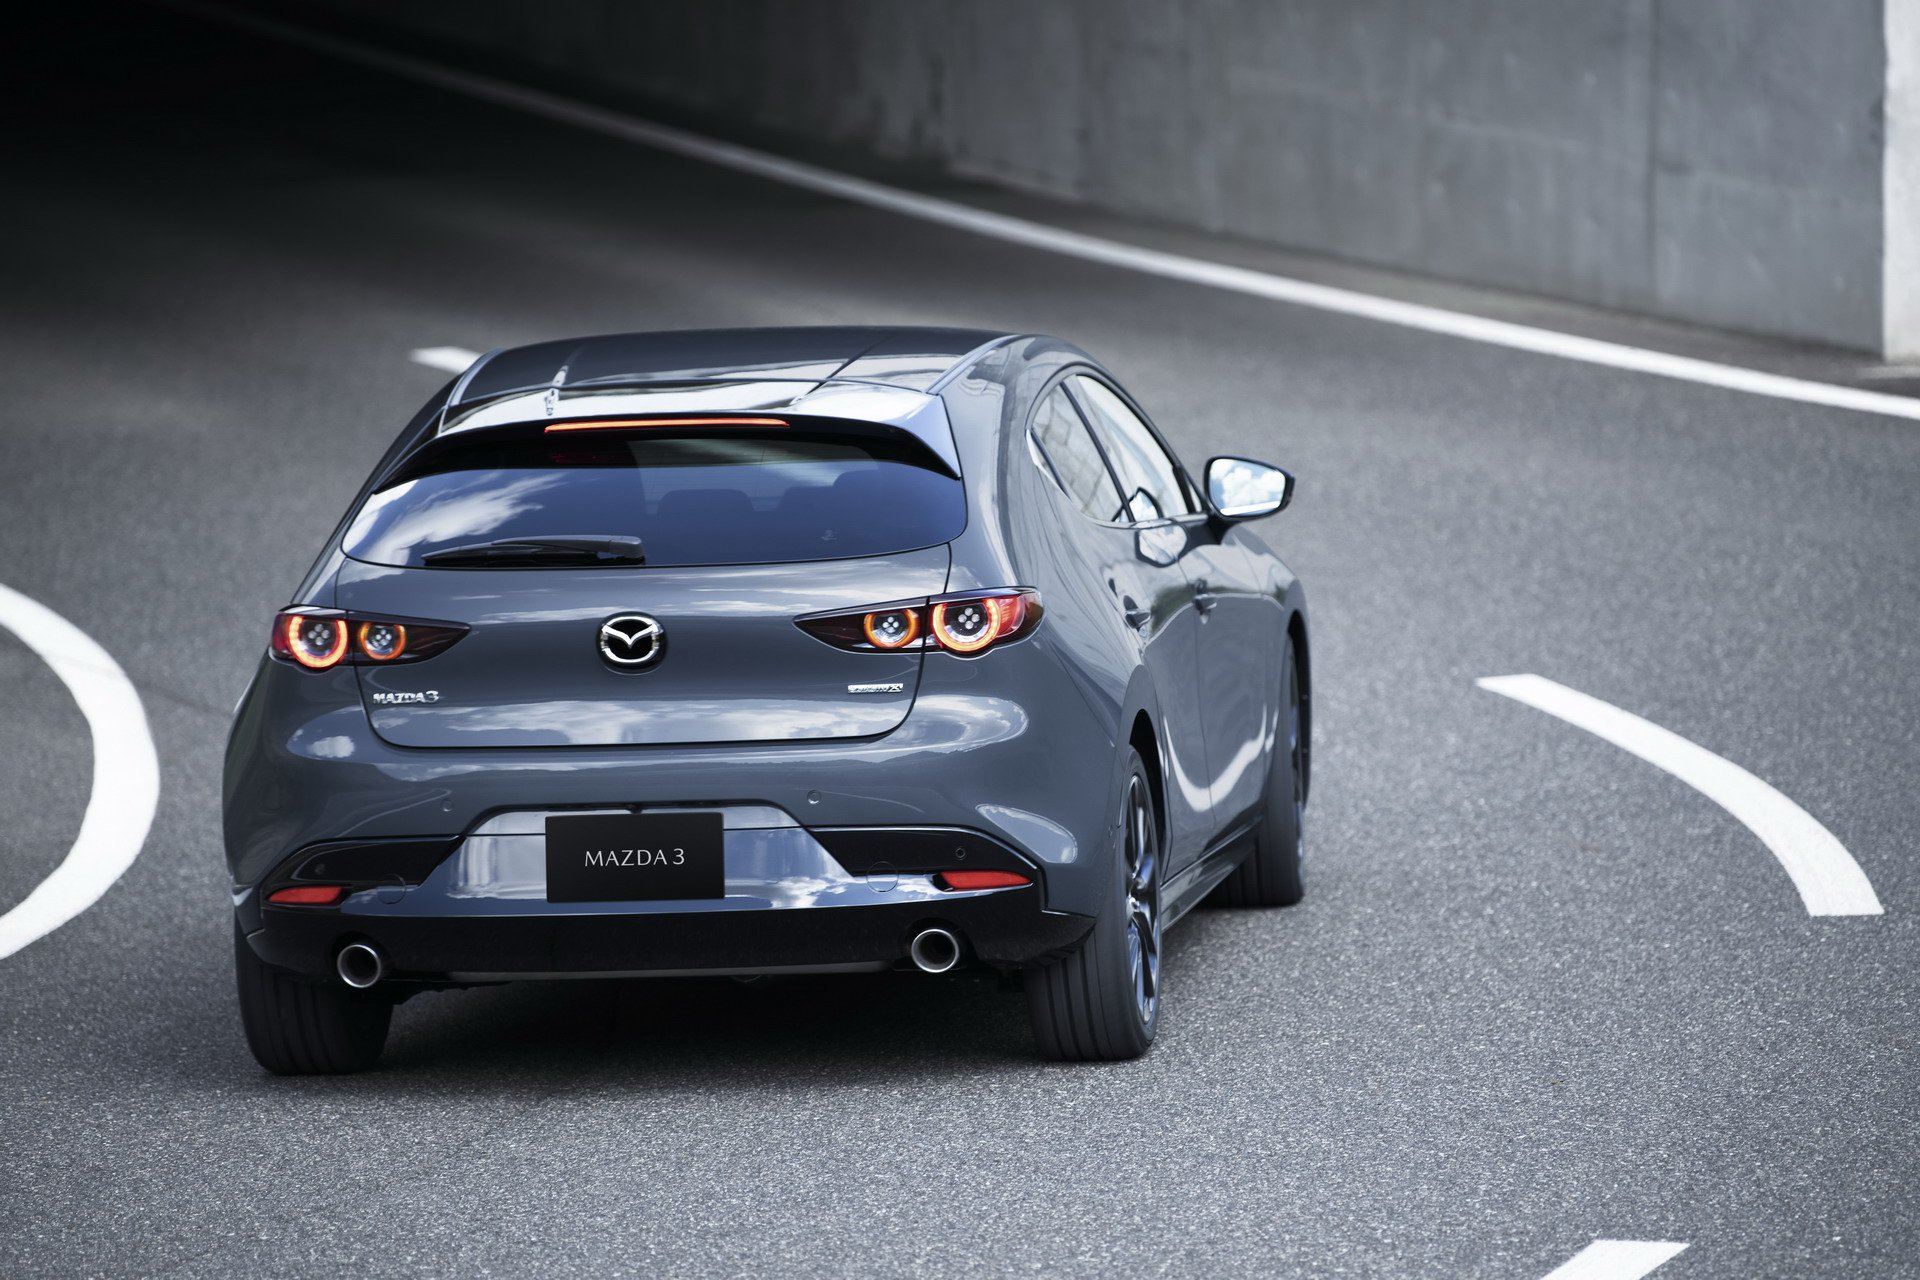 Mazda3 Hatchback and Mazda3 sedan 2019 (11)